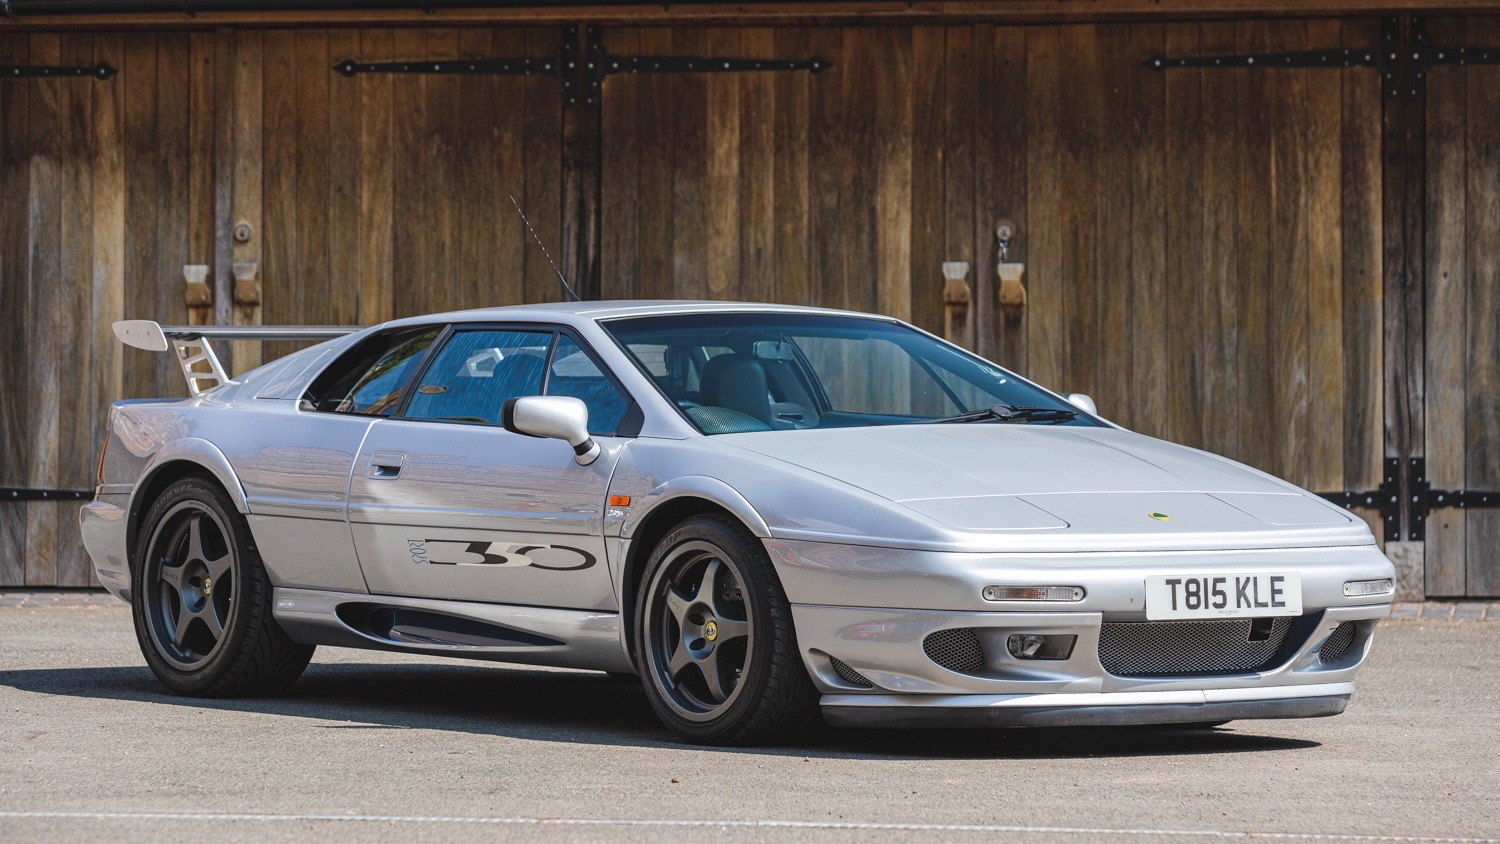 1999 Lotus Esprit owned by Richard Hammond (photo via Silverstone Auctions)